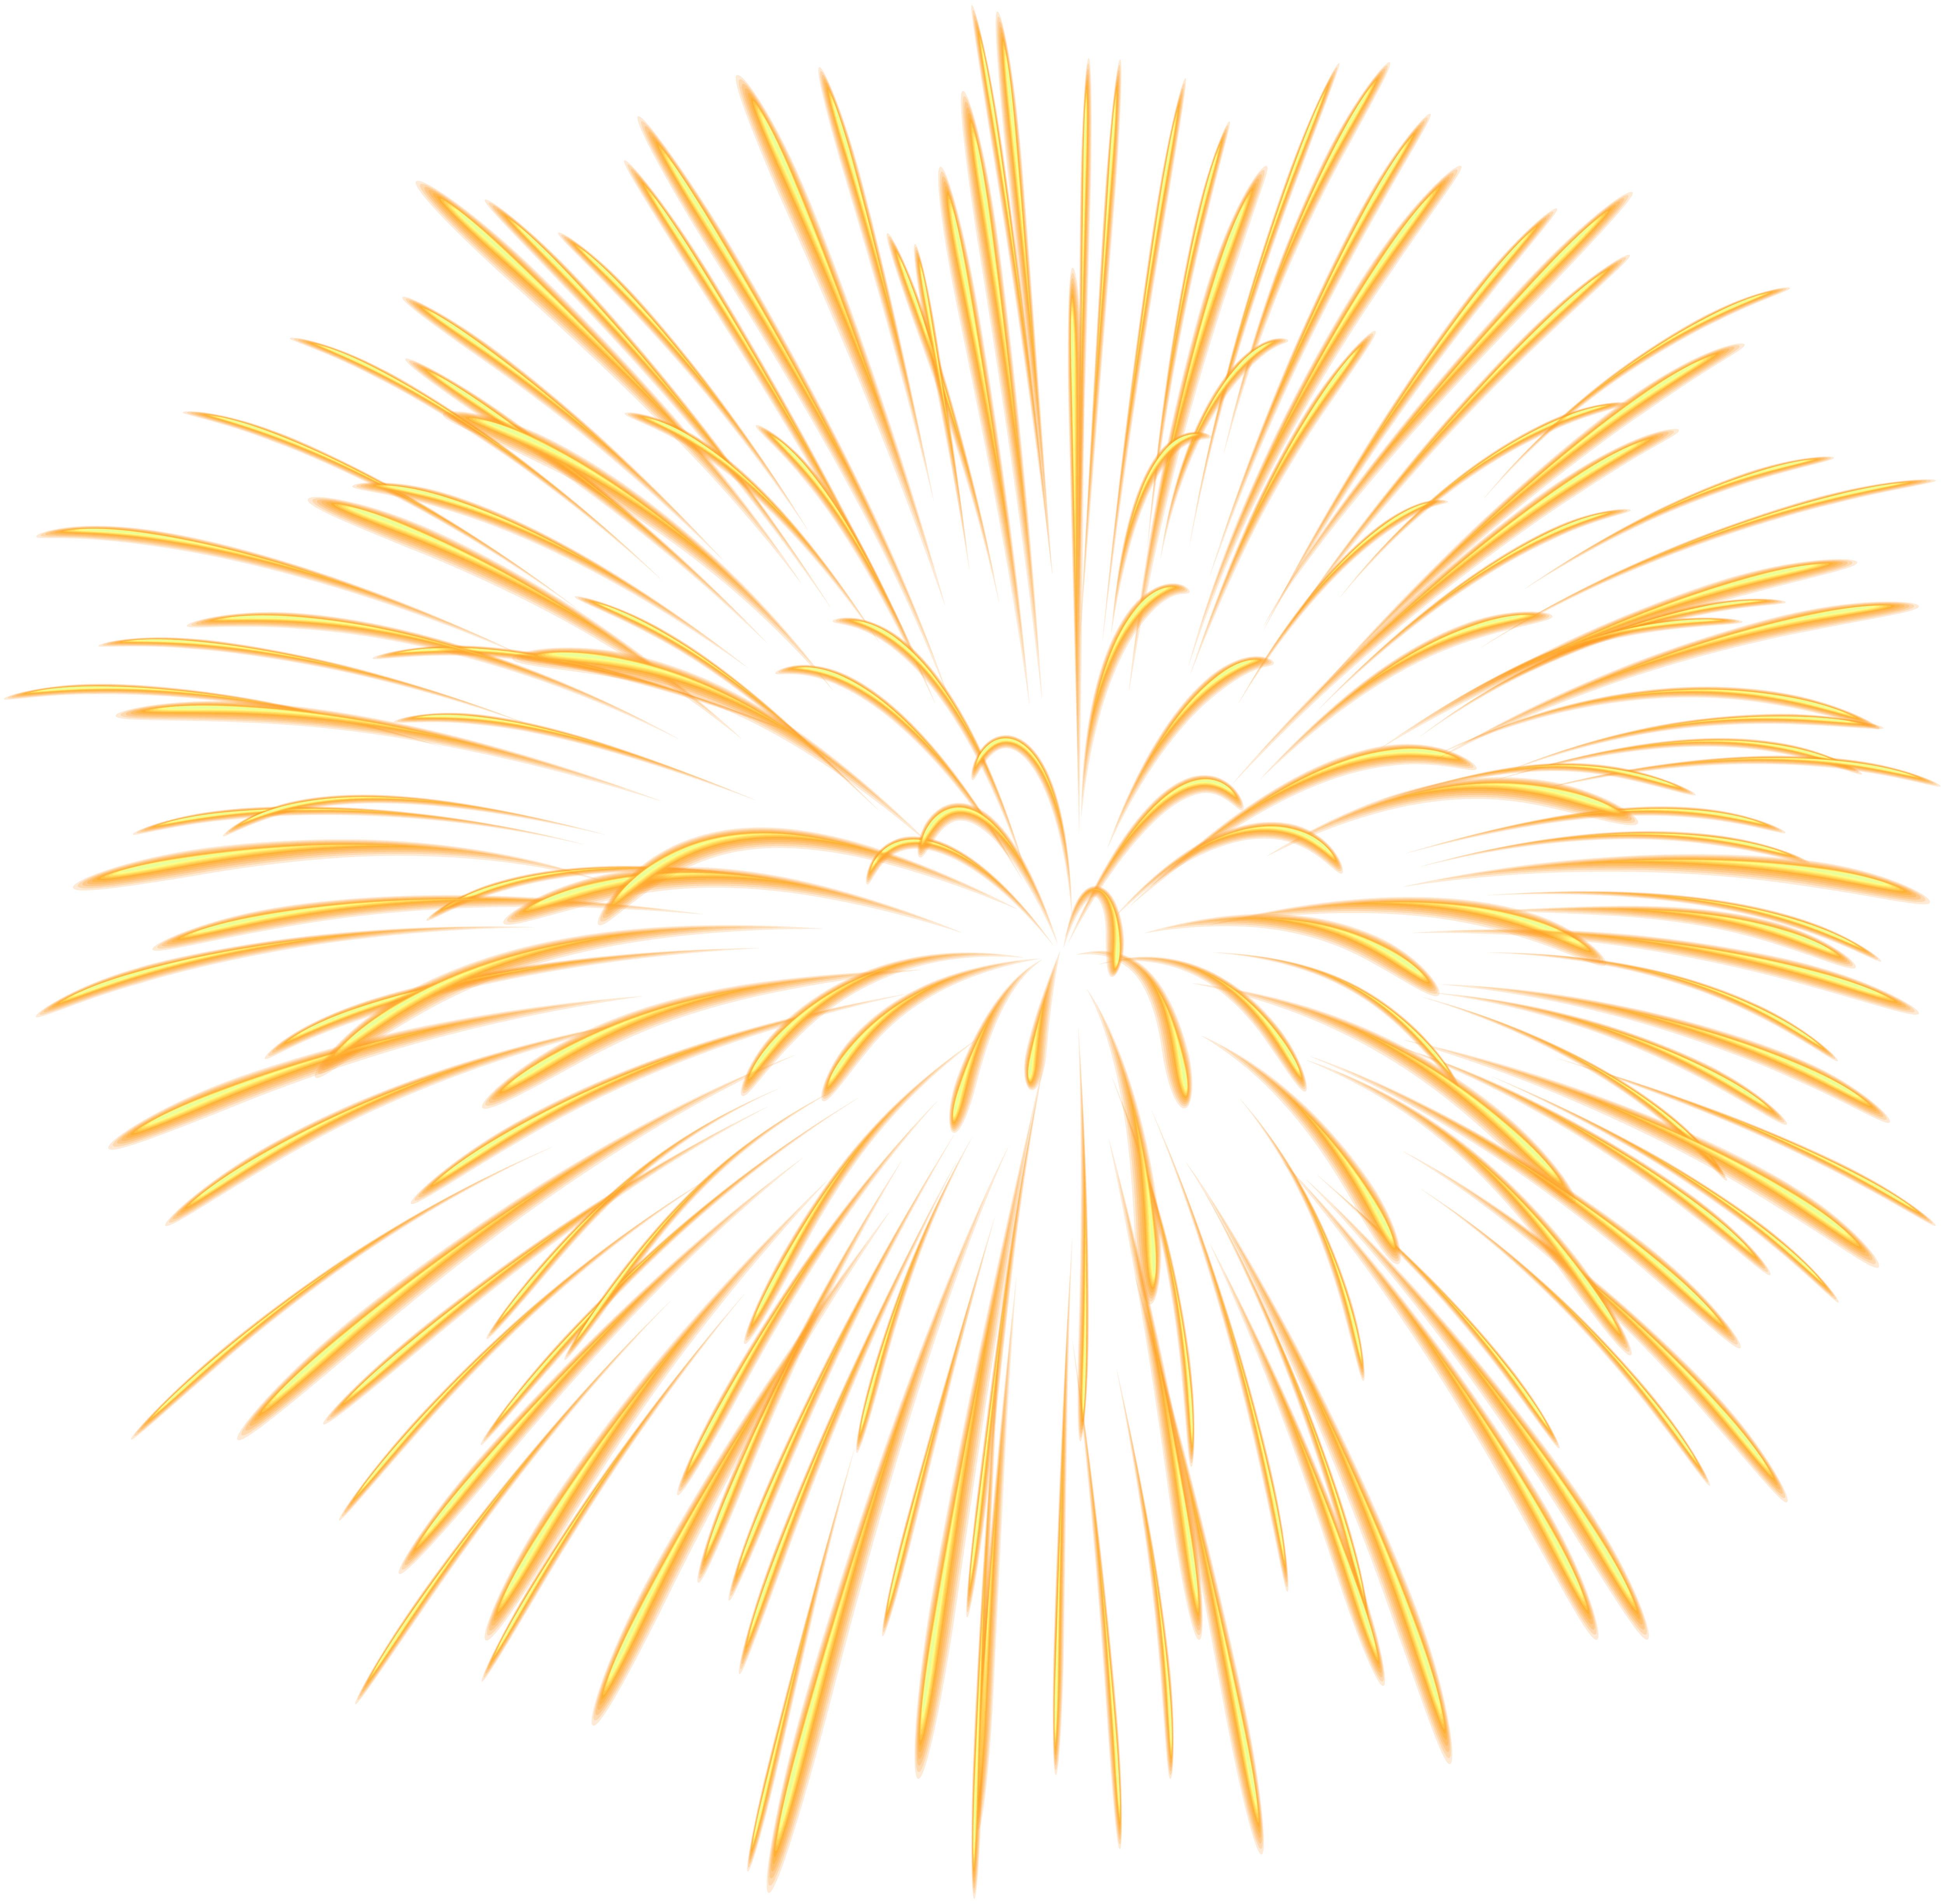 Fireworks clipart yellow  Yopriceville Transparent size Yellow